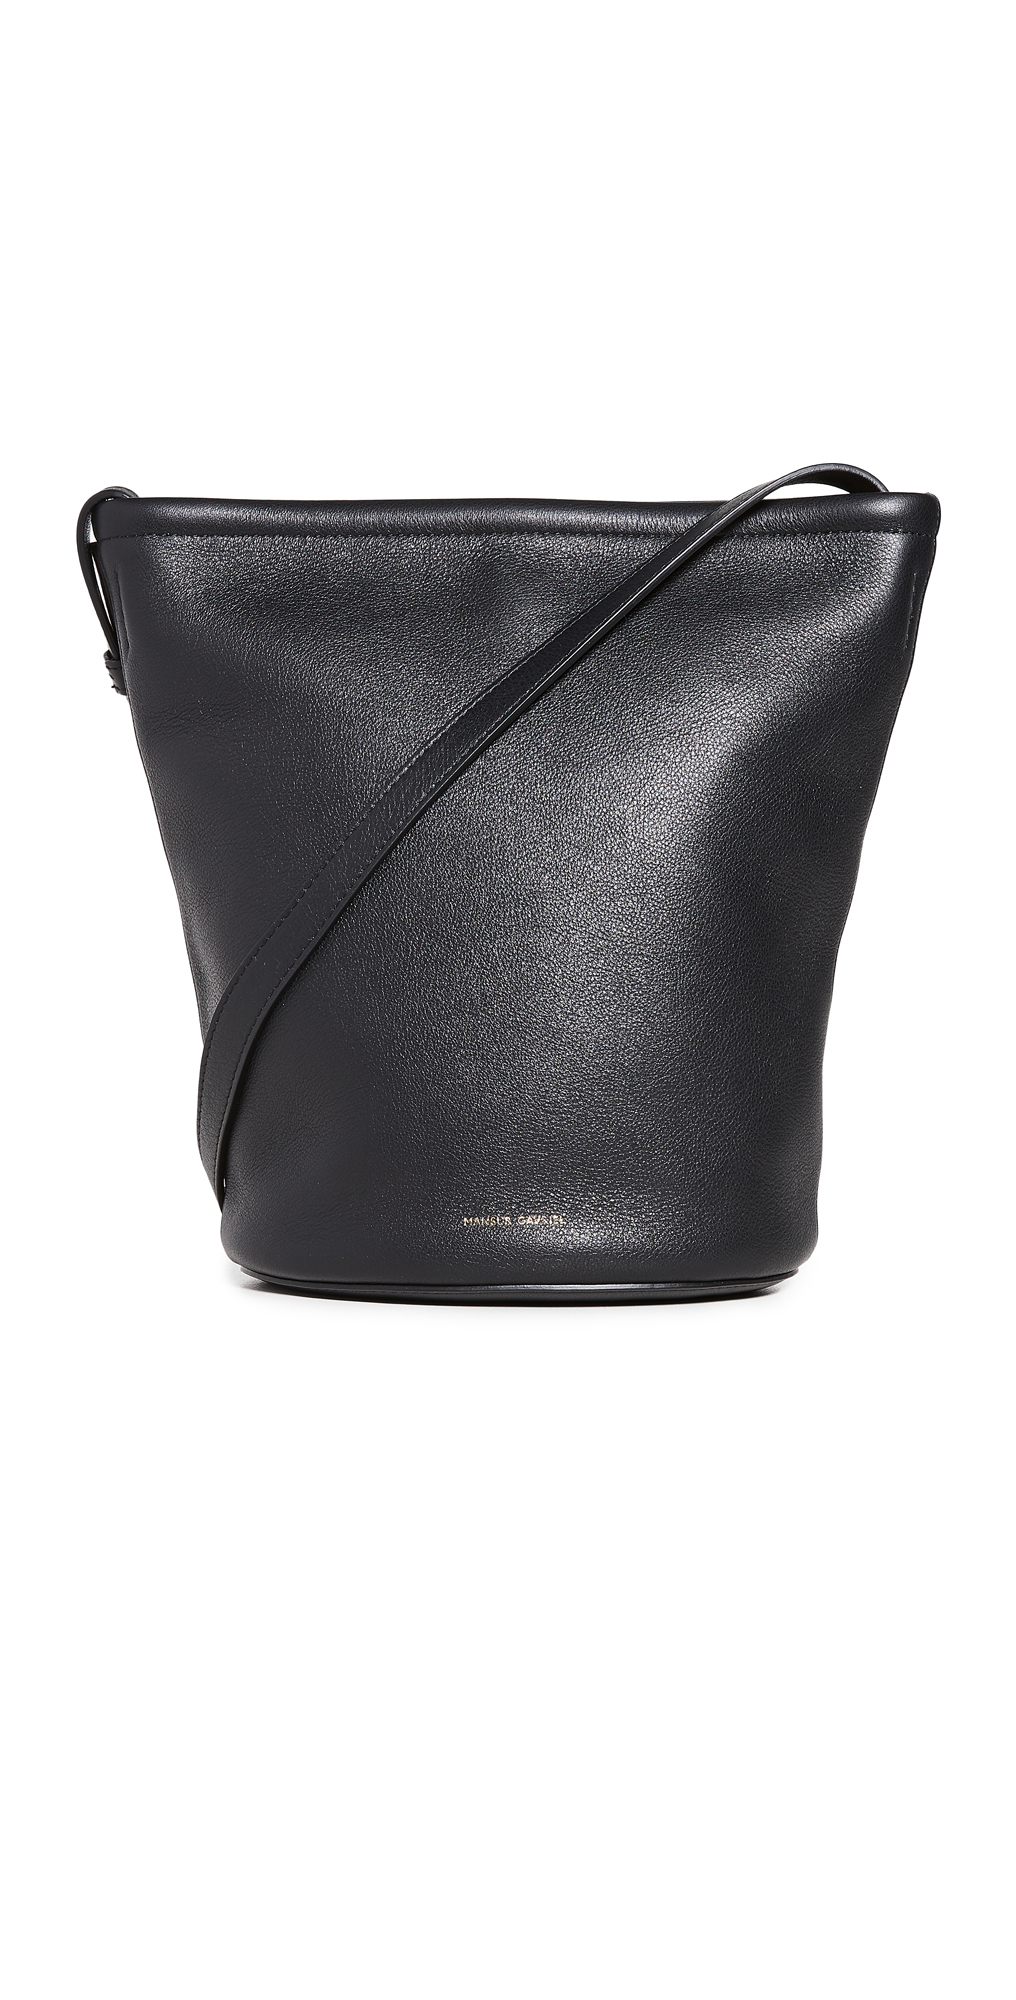 Mansur Gavriel Zip Bucket Bag